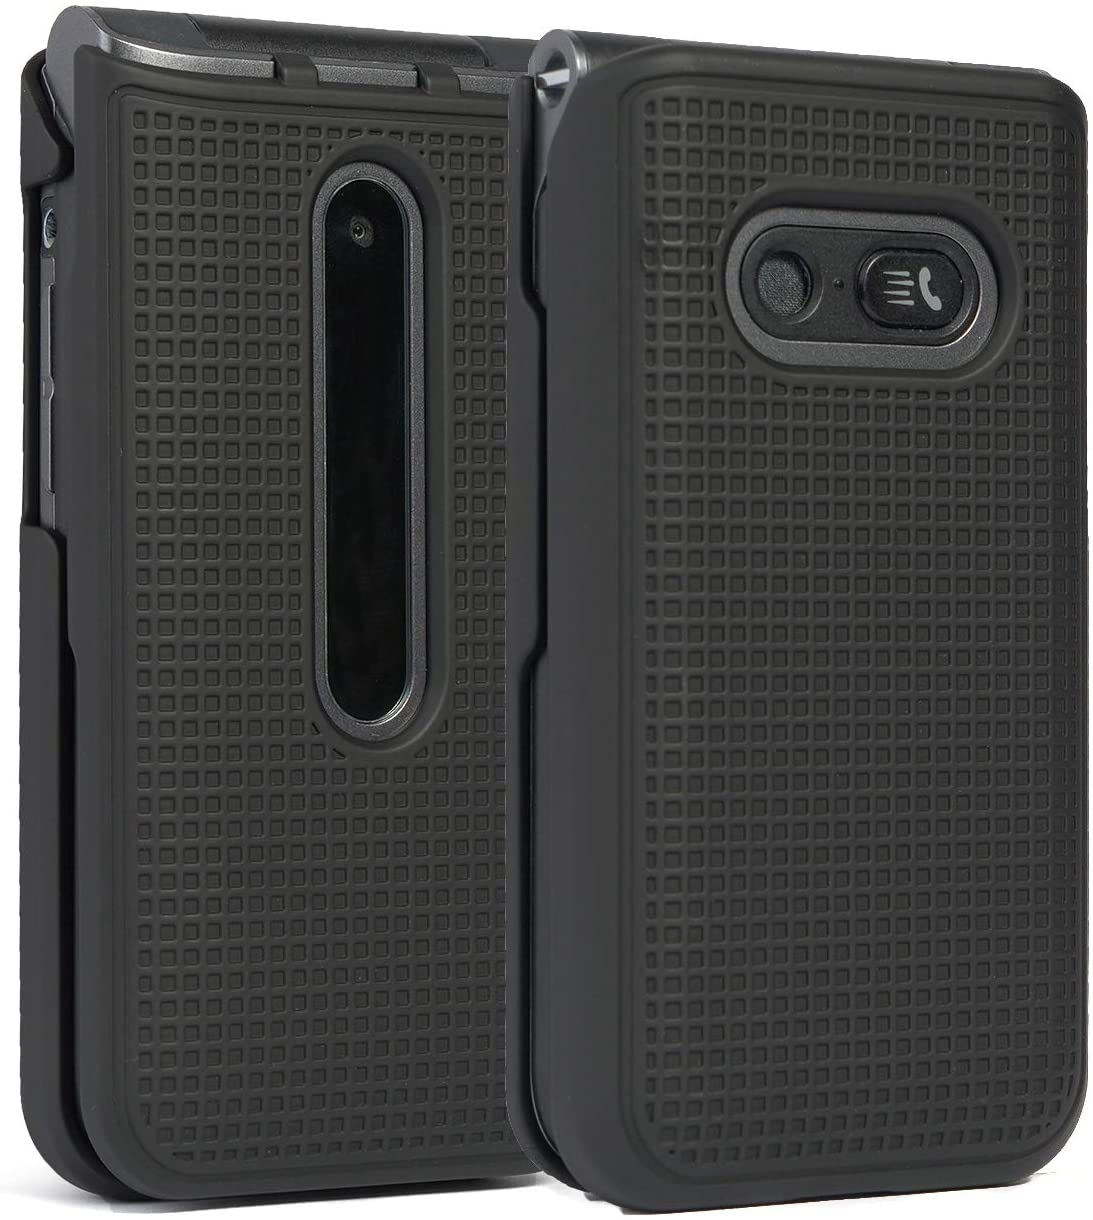 Case for LG Classic Flip, Nakedcellphone [Black] Protective Snap-On Hard Shell Cover [Grid Texture] for LG Classic Flip Phone L125DL